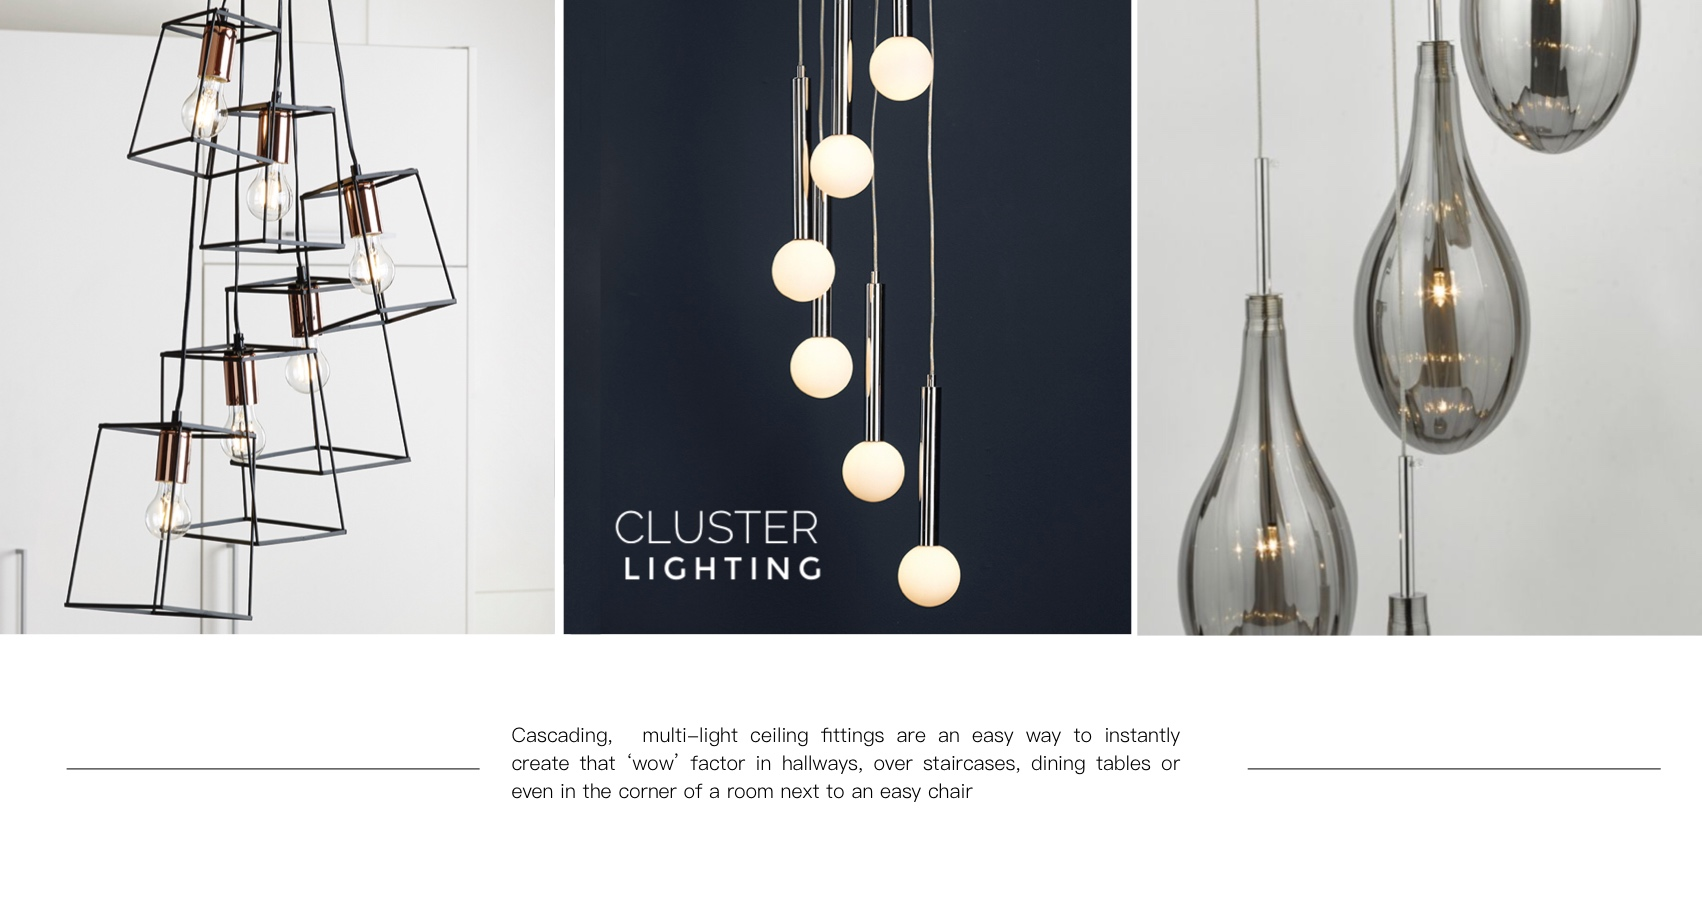 Cluster Light Fittings